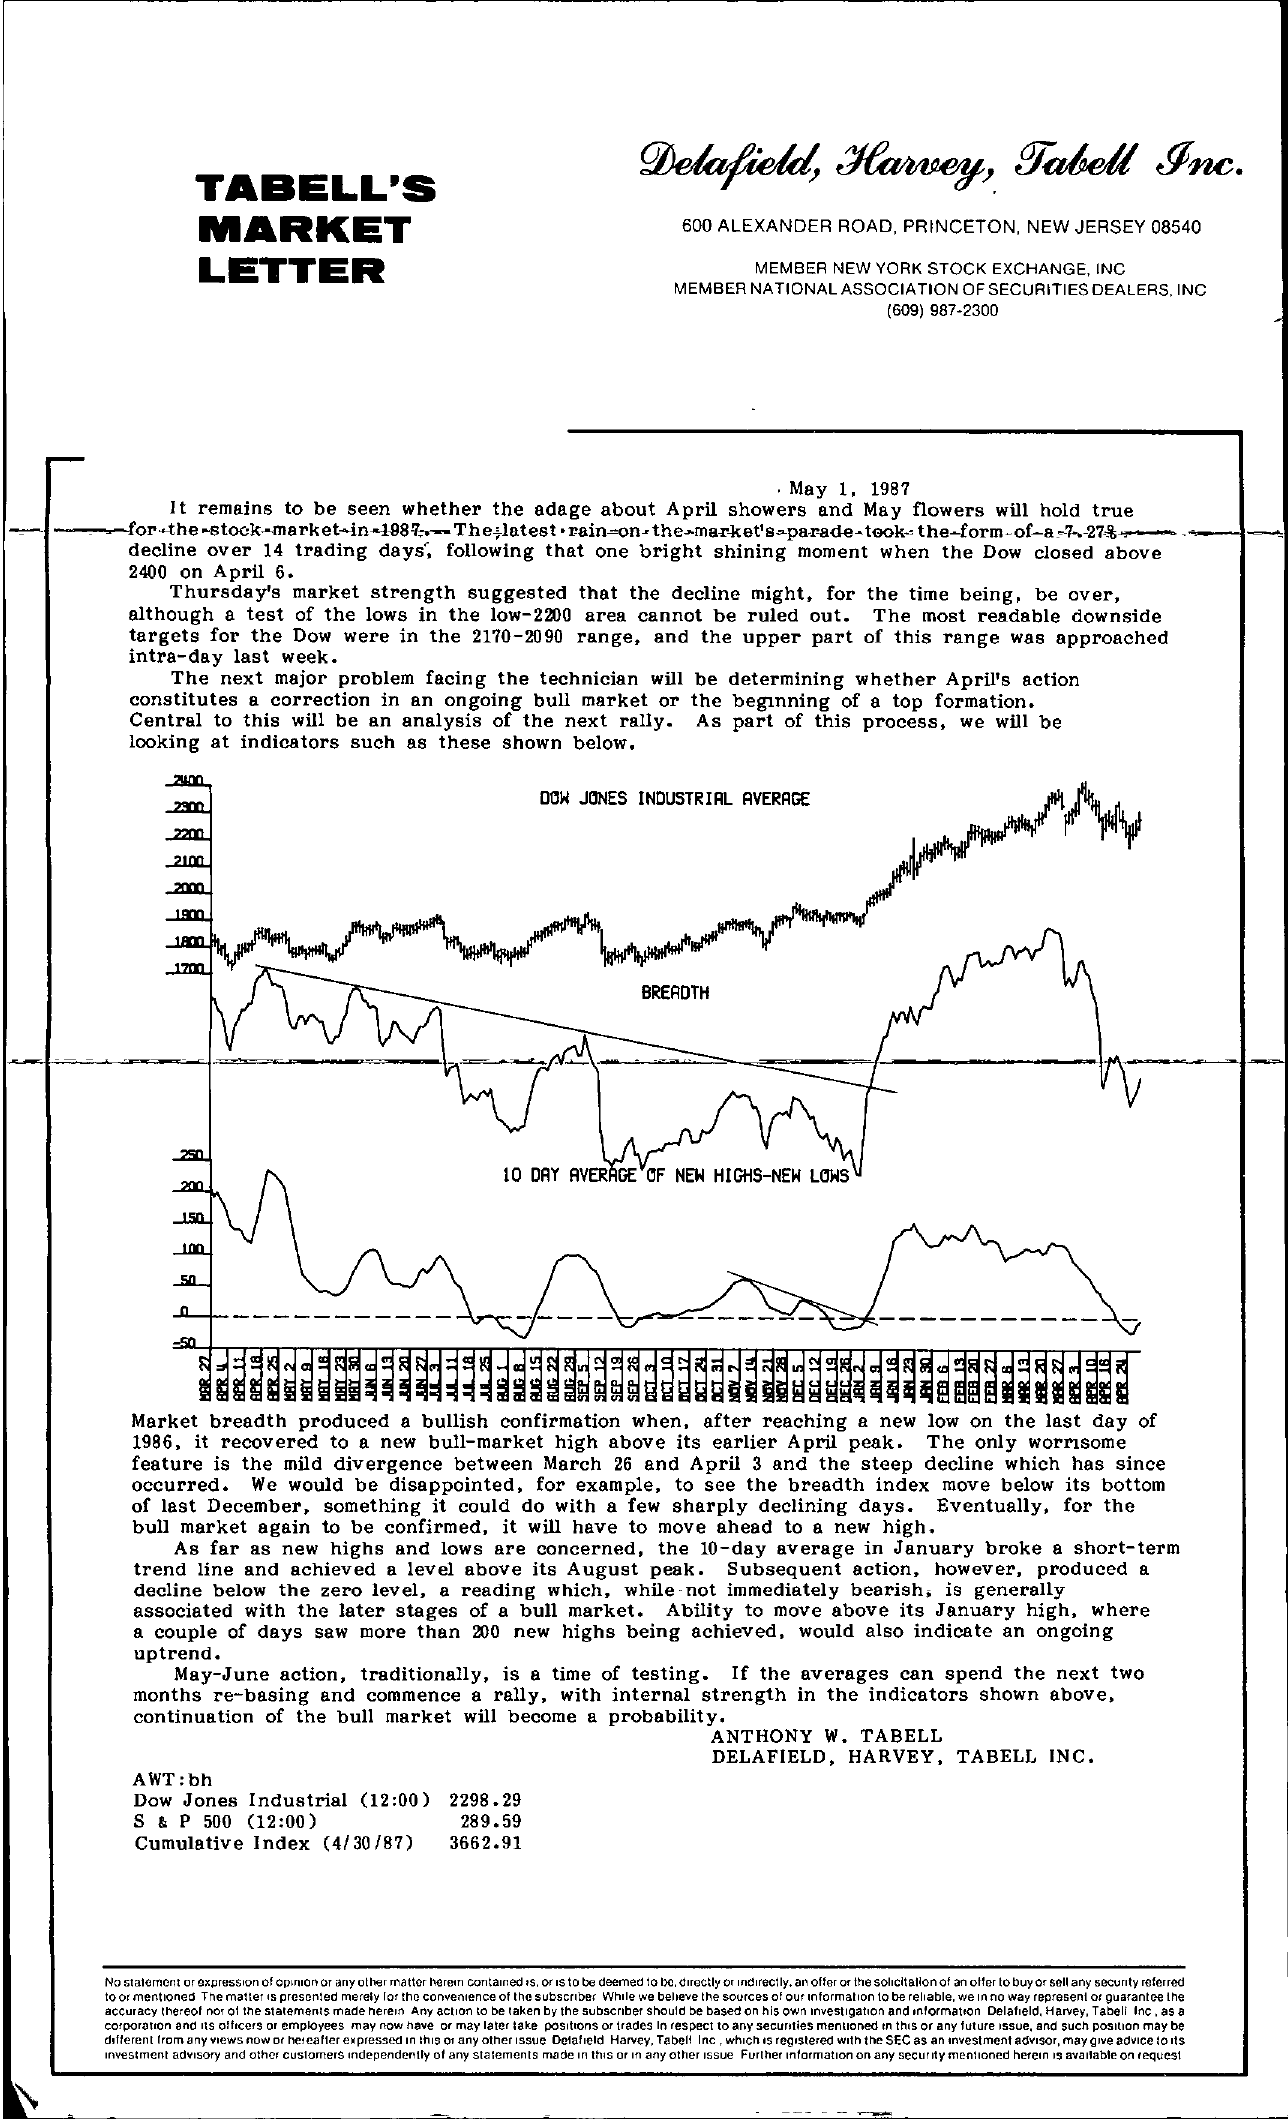 Tabell's Market Letter - May 01, 1987